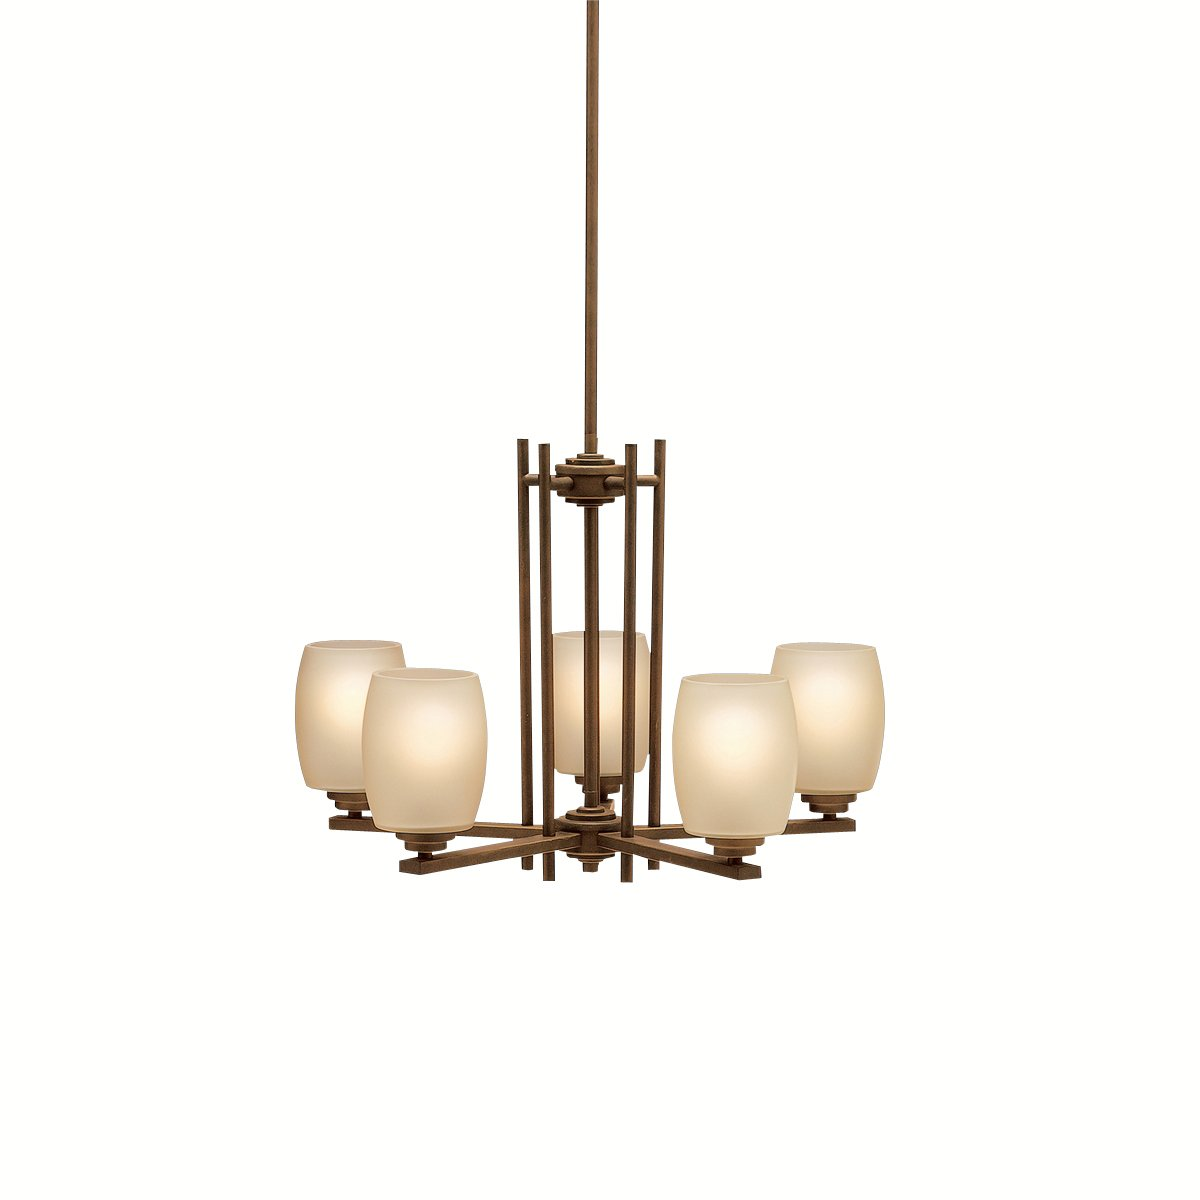 kichler lighting 1896oz eileen 5light updown chandelier olde bronze with umberetched glass amazoncom kichler lighting